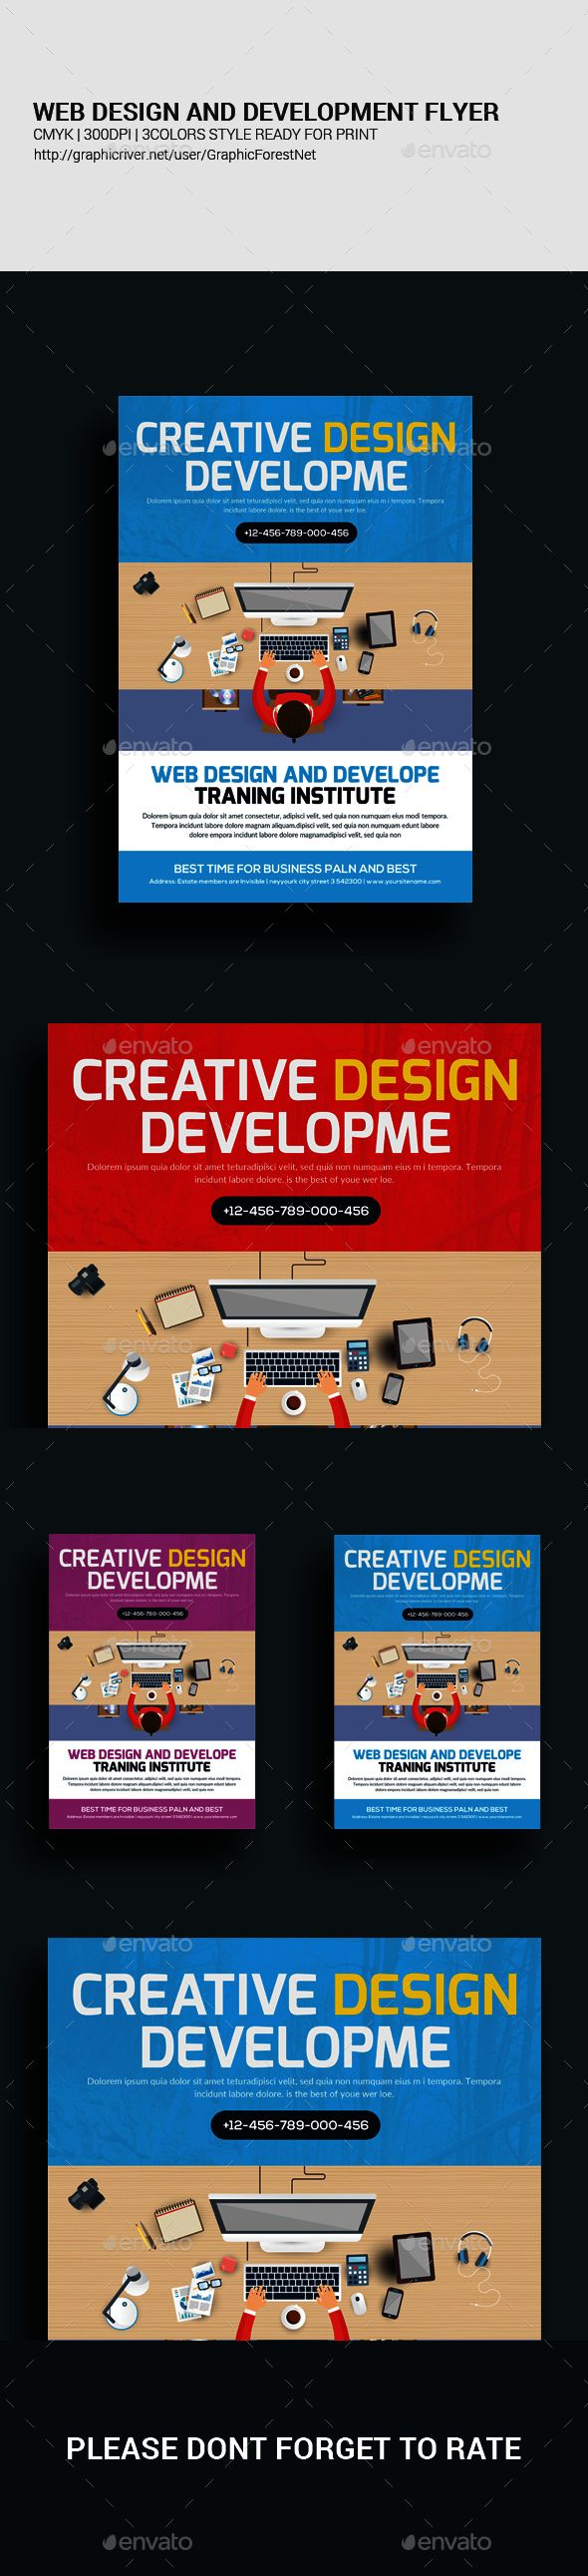 Website Design And Develop Agency Flyer Psd  Website Designs